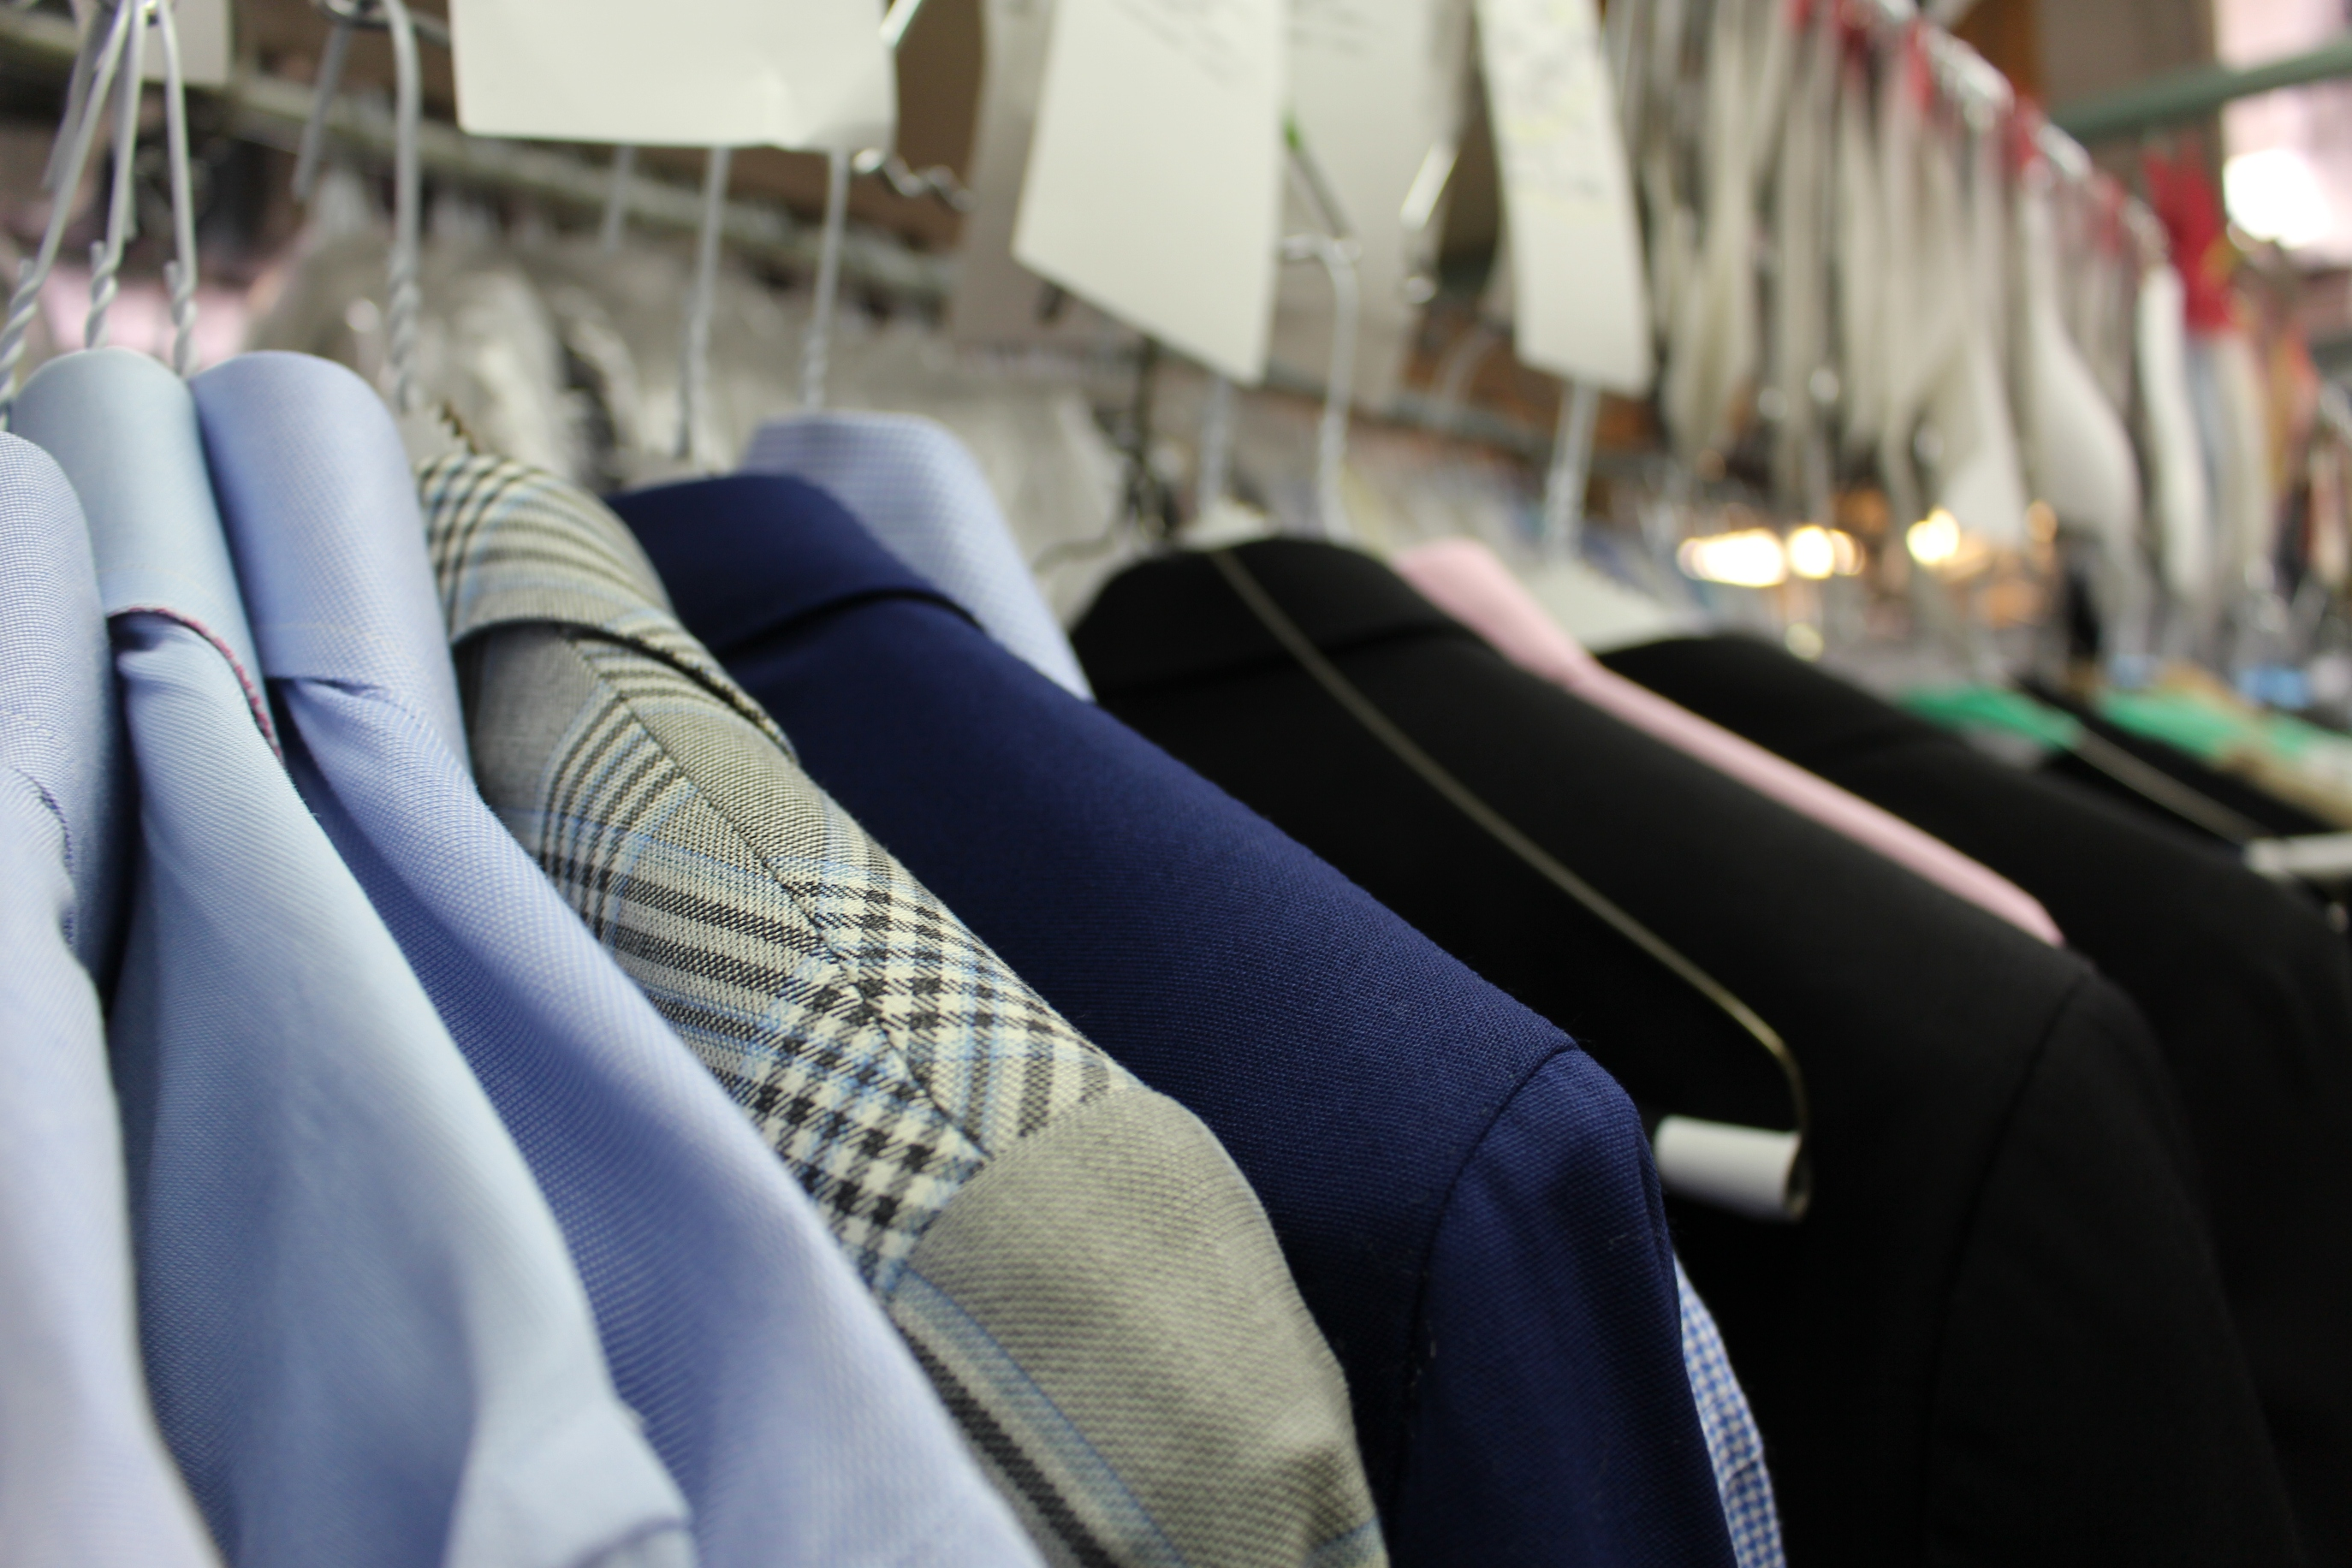 Professional suit alterations